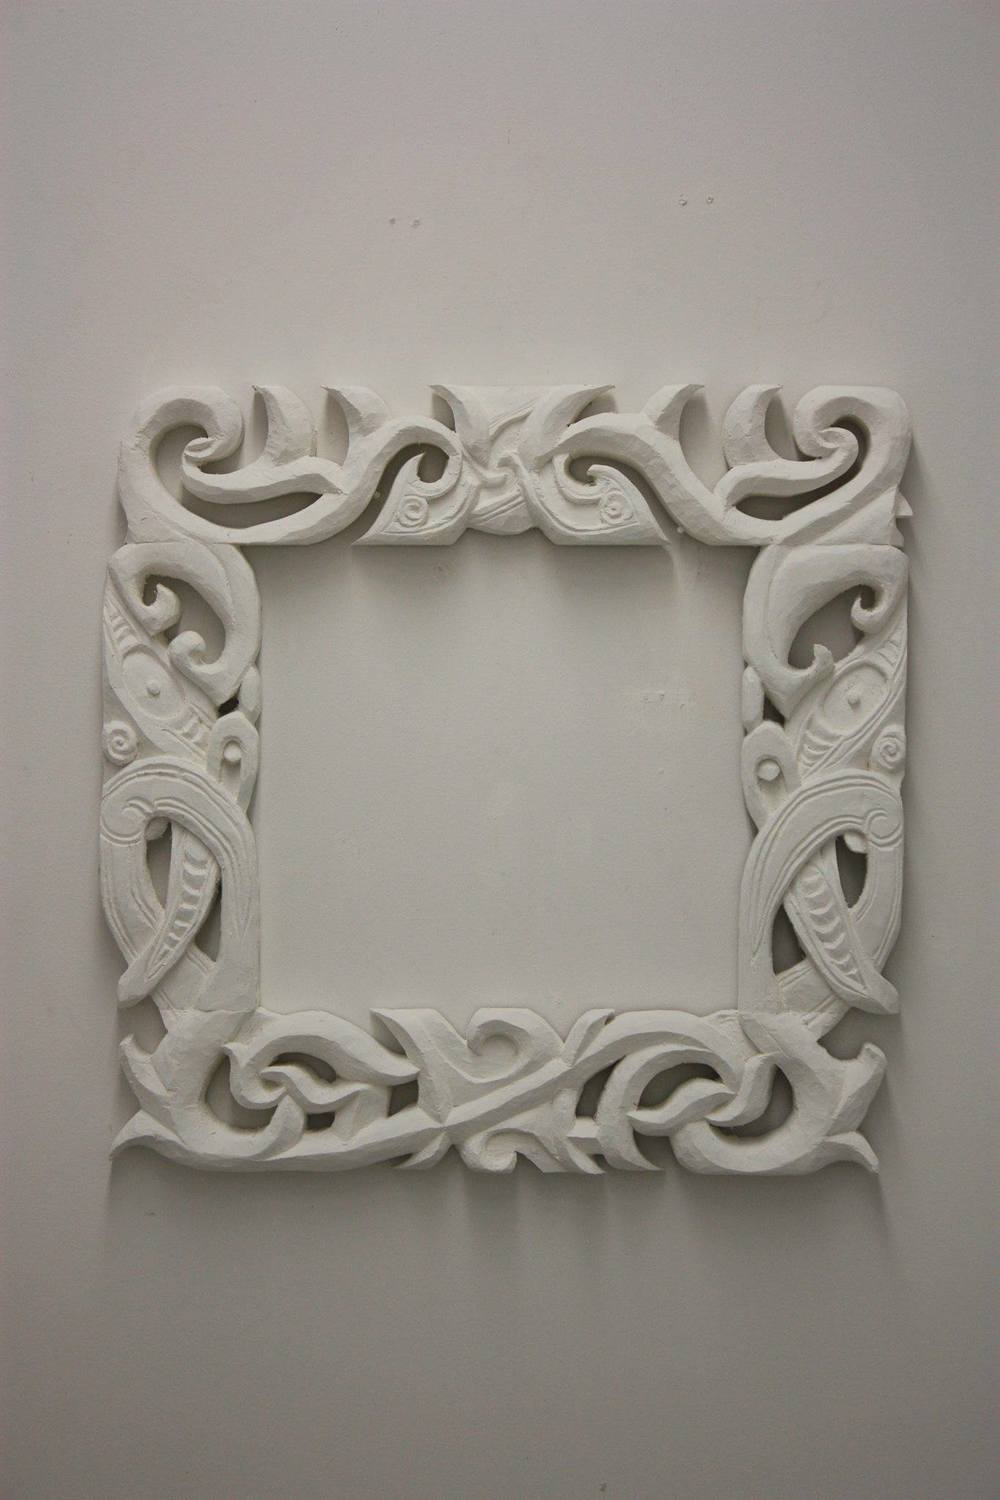 "'Carved White Frame' Wood carving, 24"" x 24"" $3000"